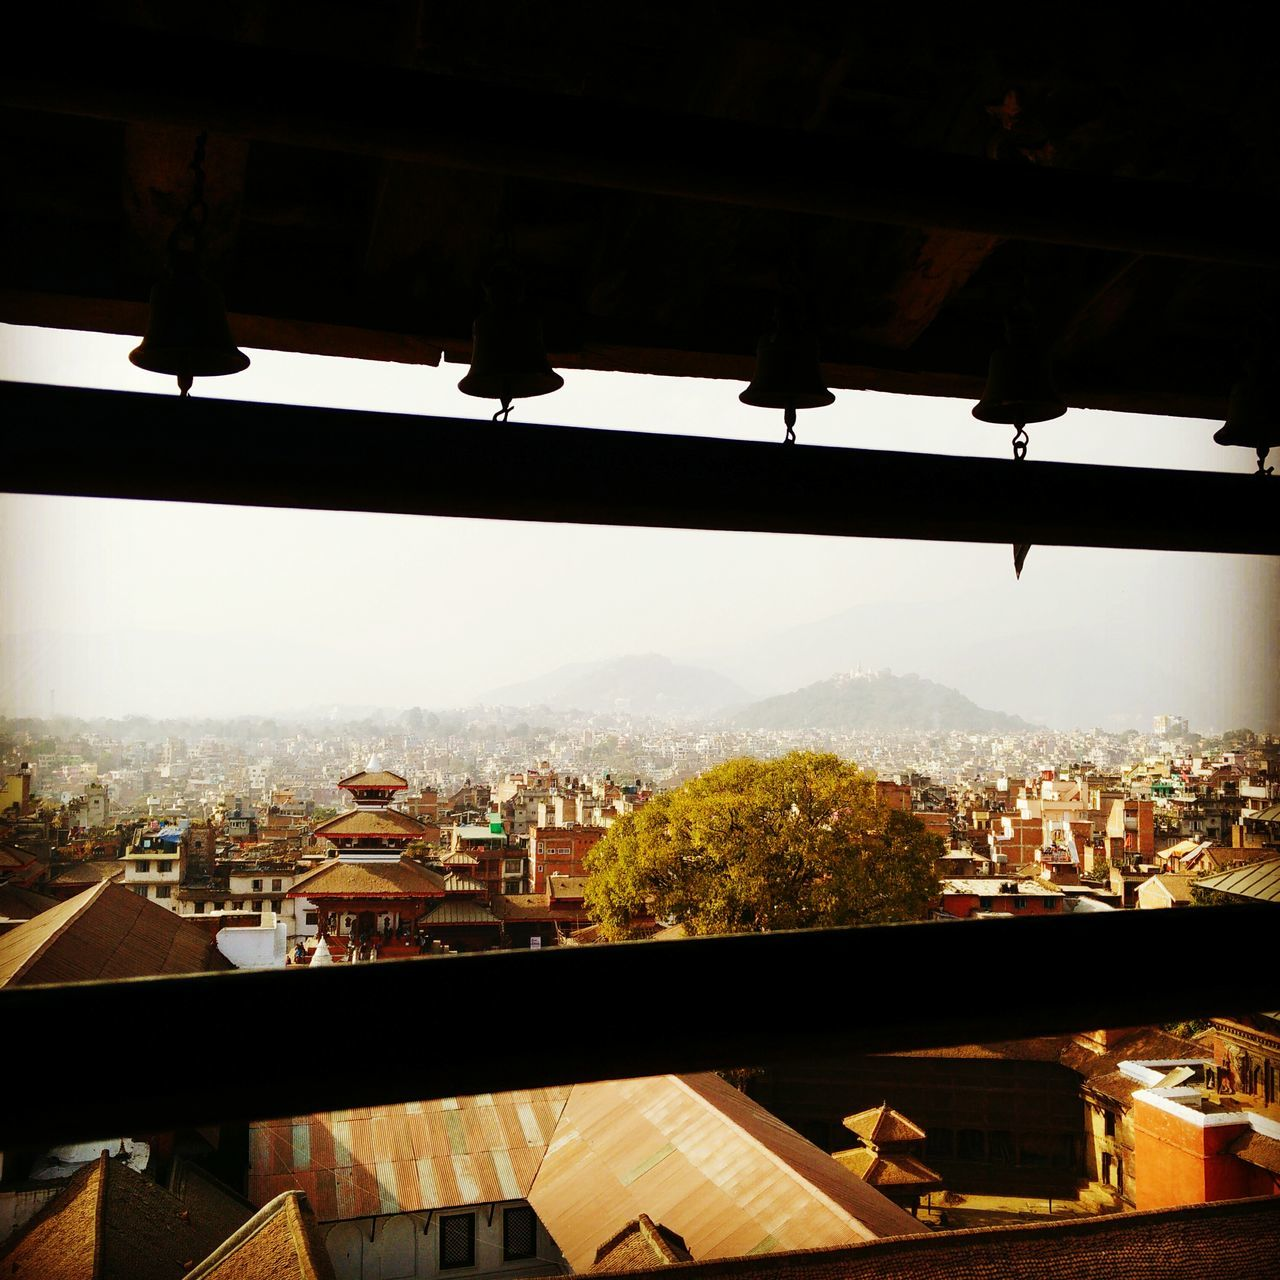 View from 9 storey royal palace Basantapur Darbar Square, Kathmandu, Nepal. The palace does not exists anymore. It became prey of earthquake that took place in 2015. First Eyeem Photo Heritage Basantapur Durbar Square Nepalese Beauty Nepal Earthquake Rememberance